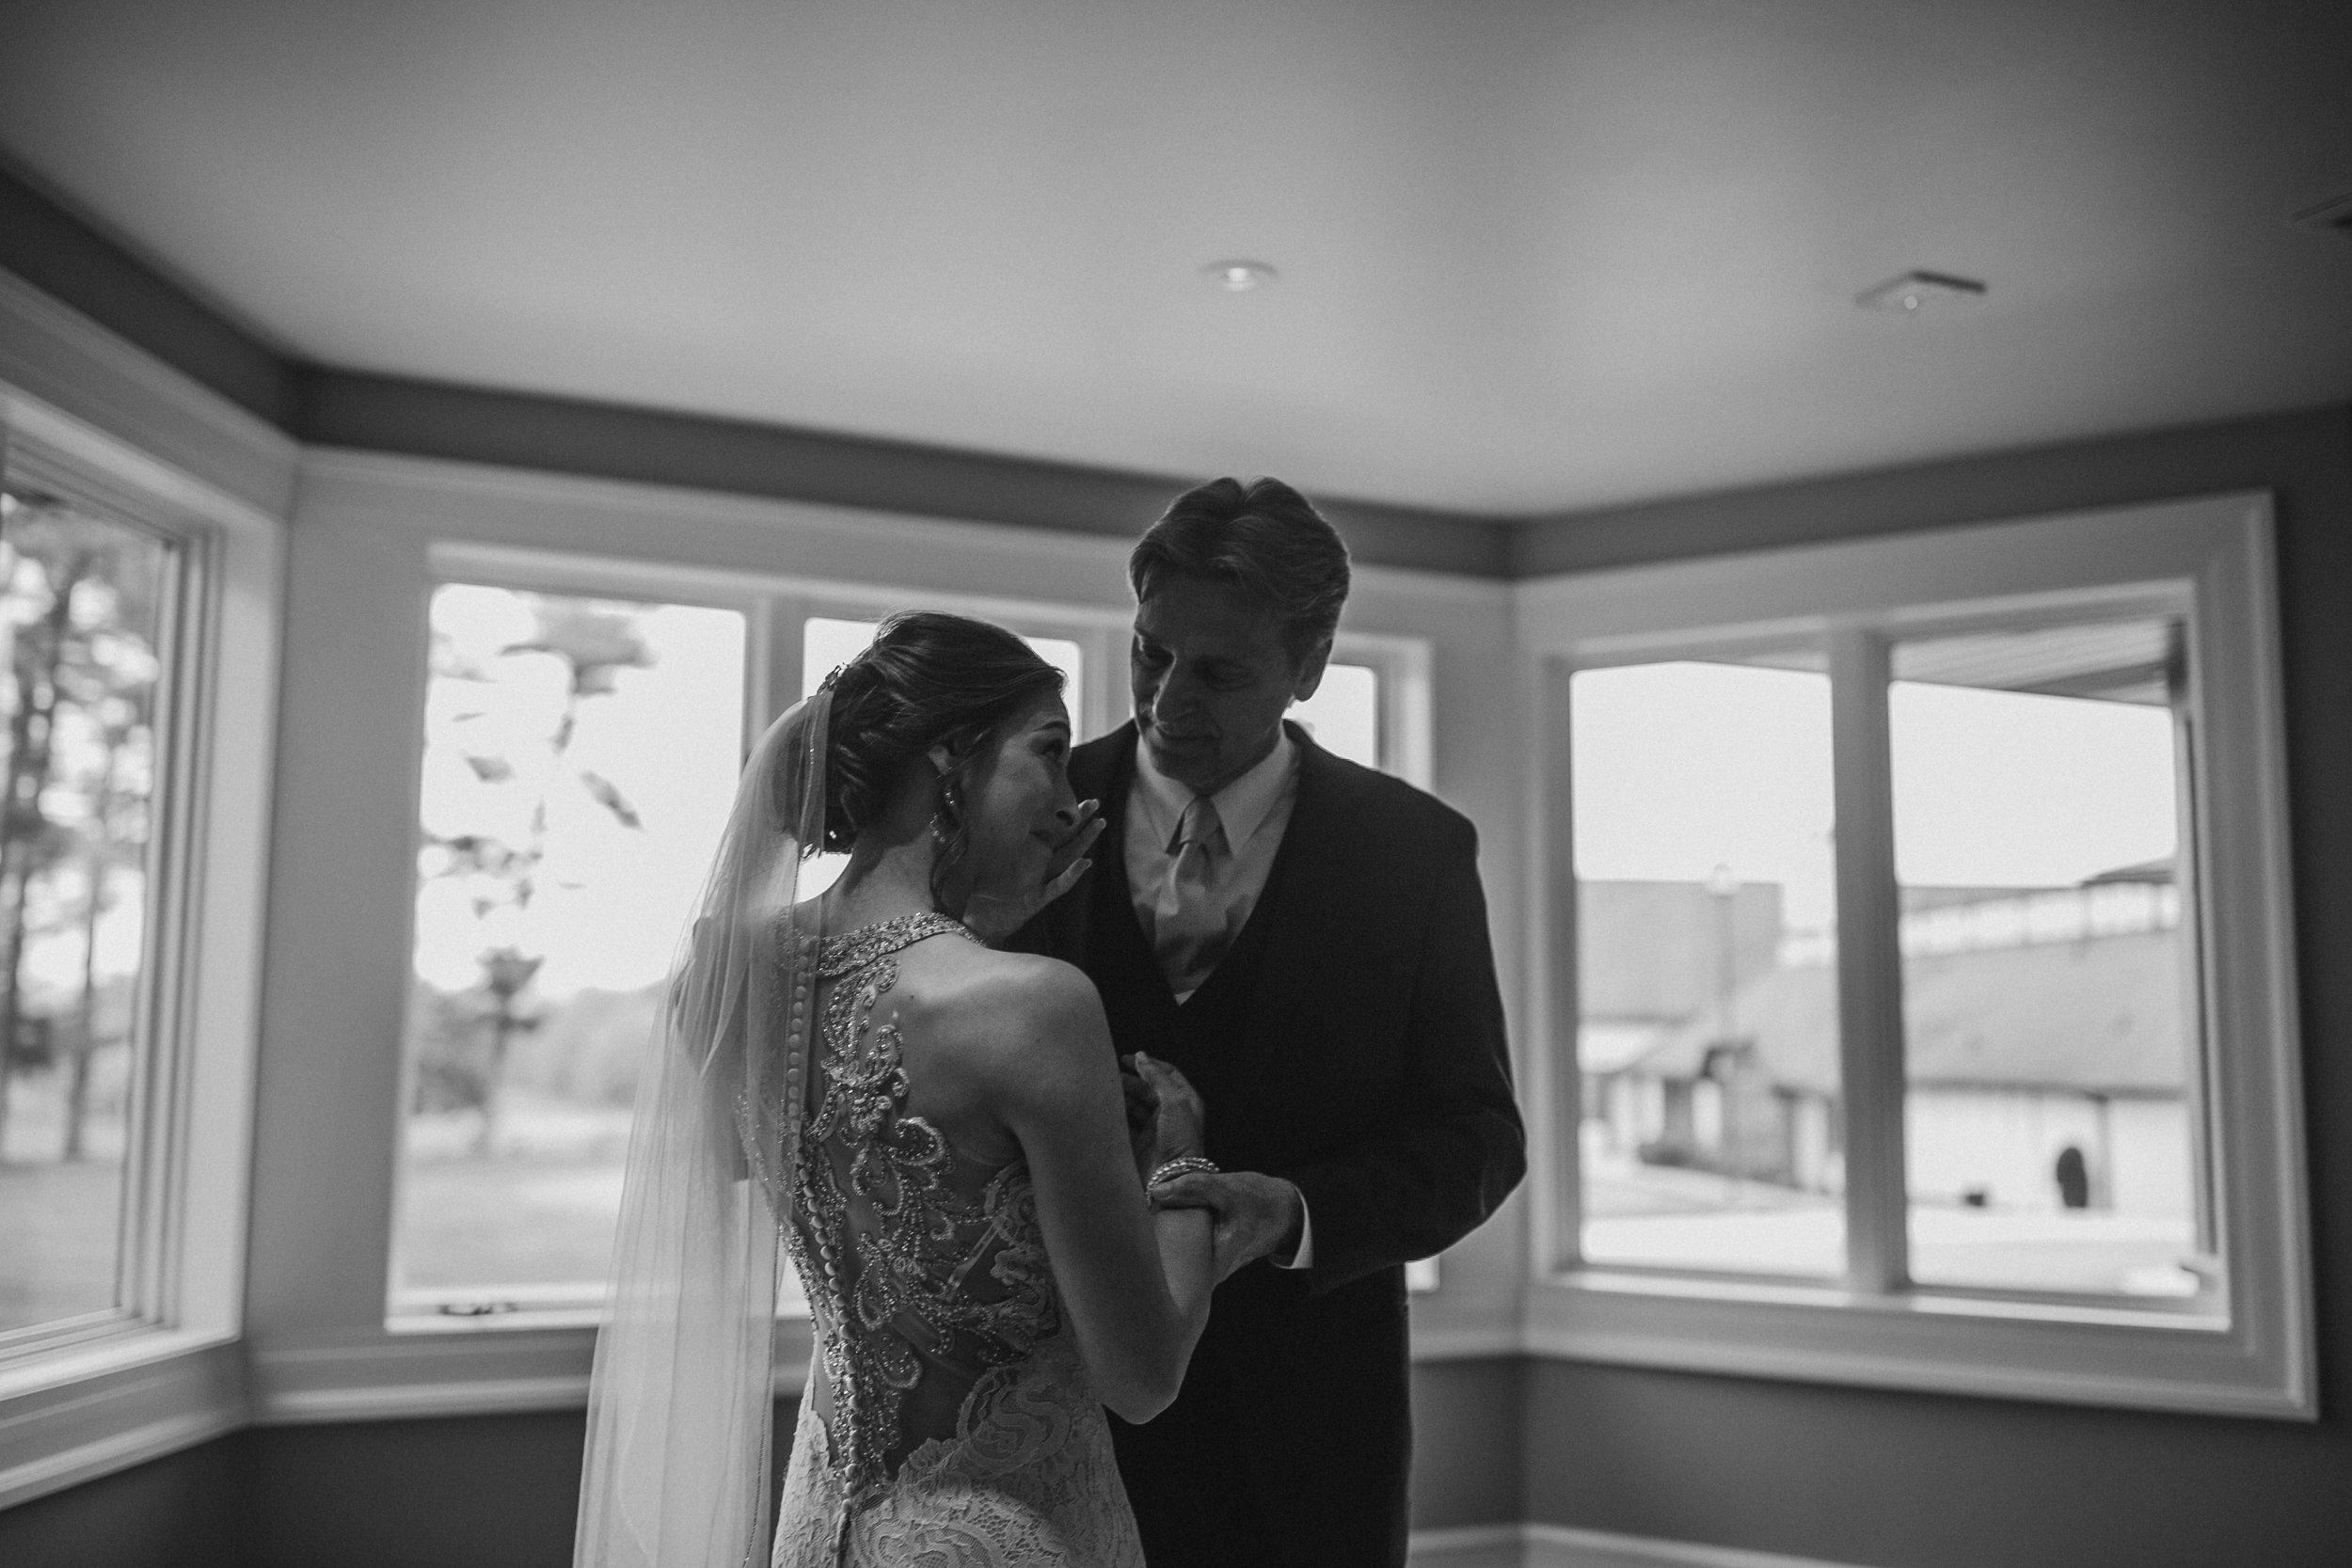 2018-5-Sammi-Travis-Preparations-Grand-Rapids-Michigan-Wedding-Photographer-133.jpg